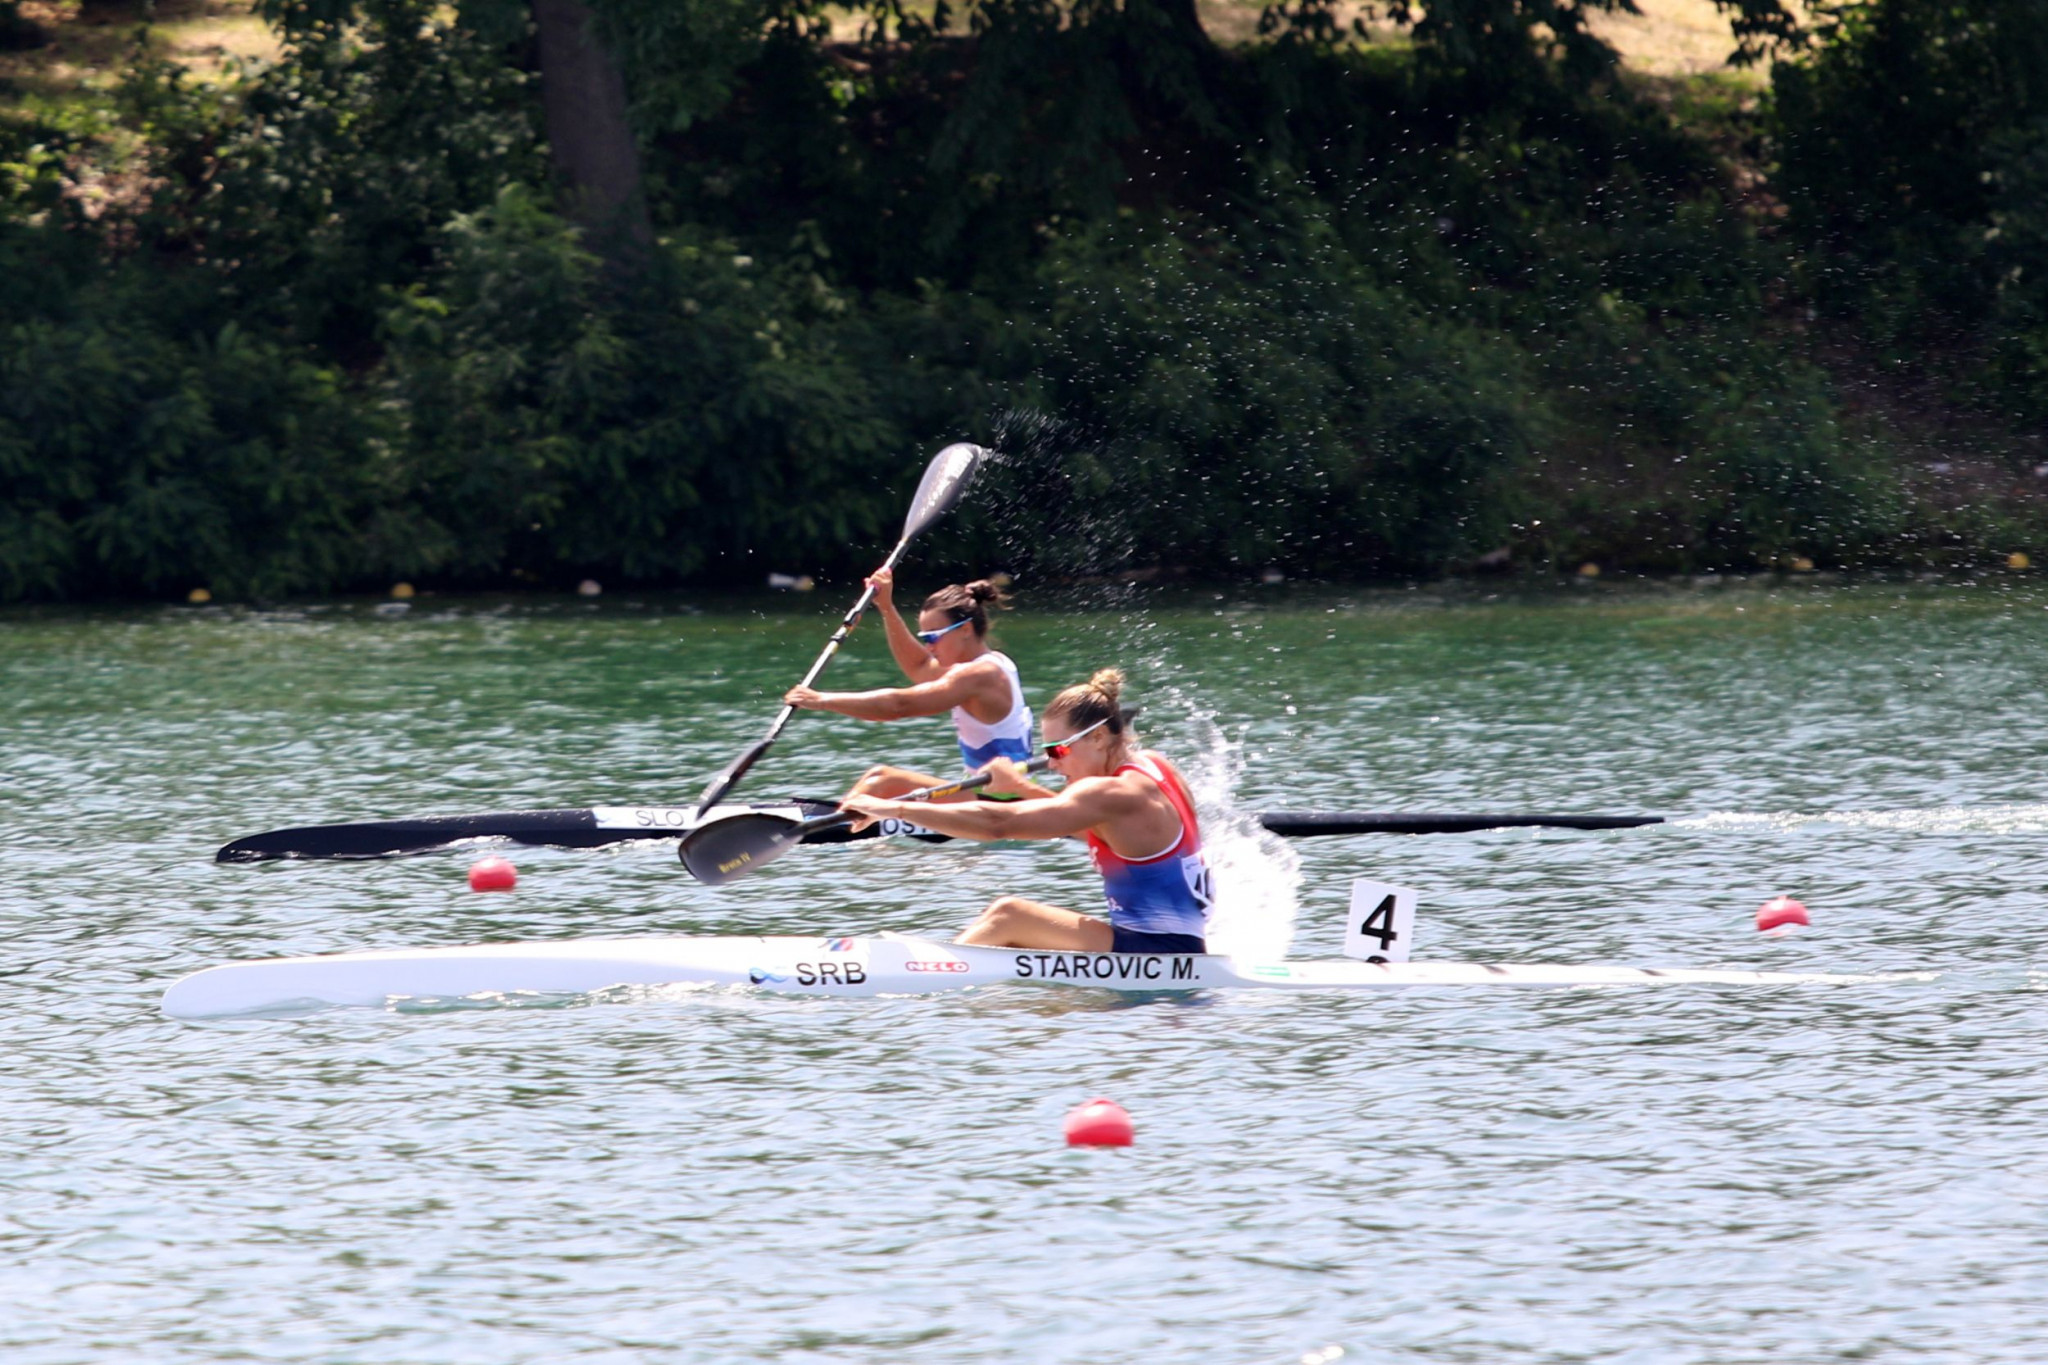 Starović shows speed at home European Canoe Sprint Championships